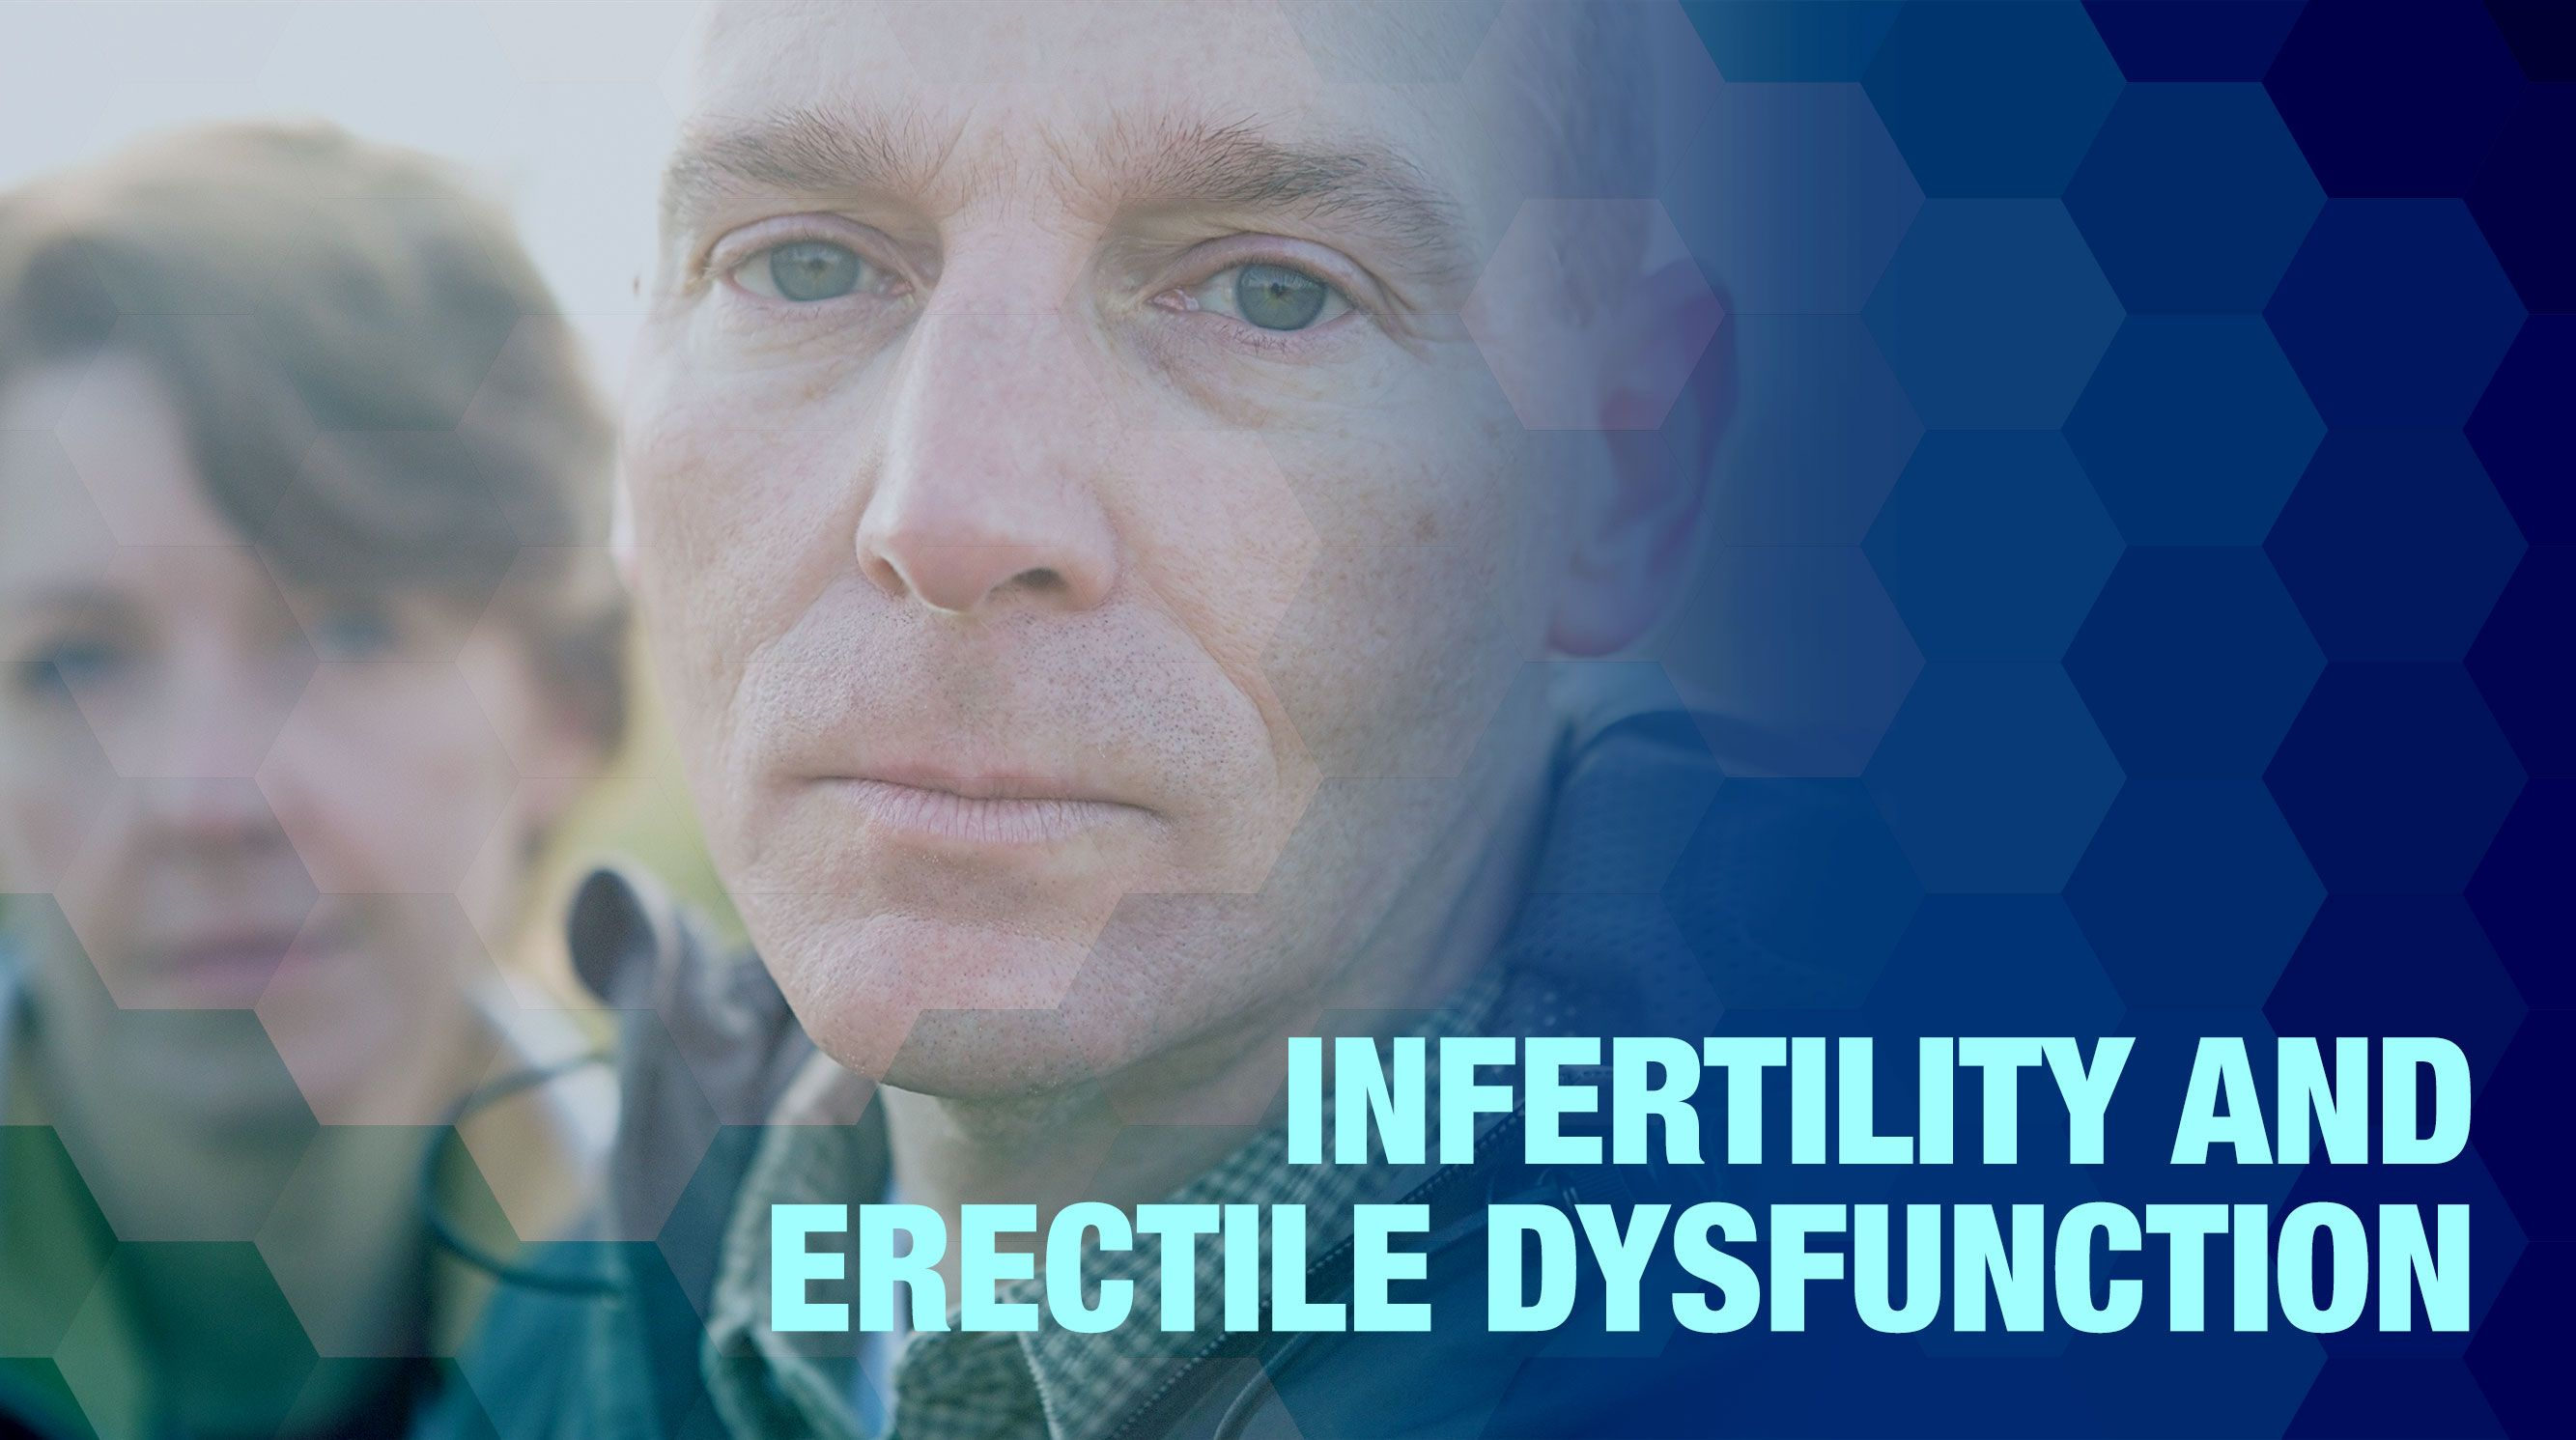 Infertility and Erectile Dysfunction